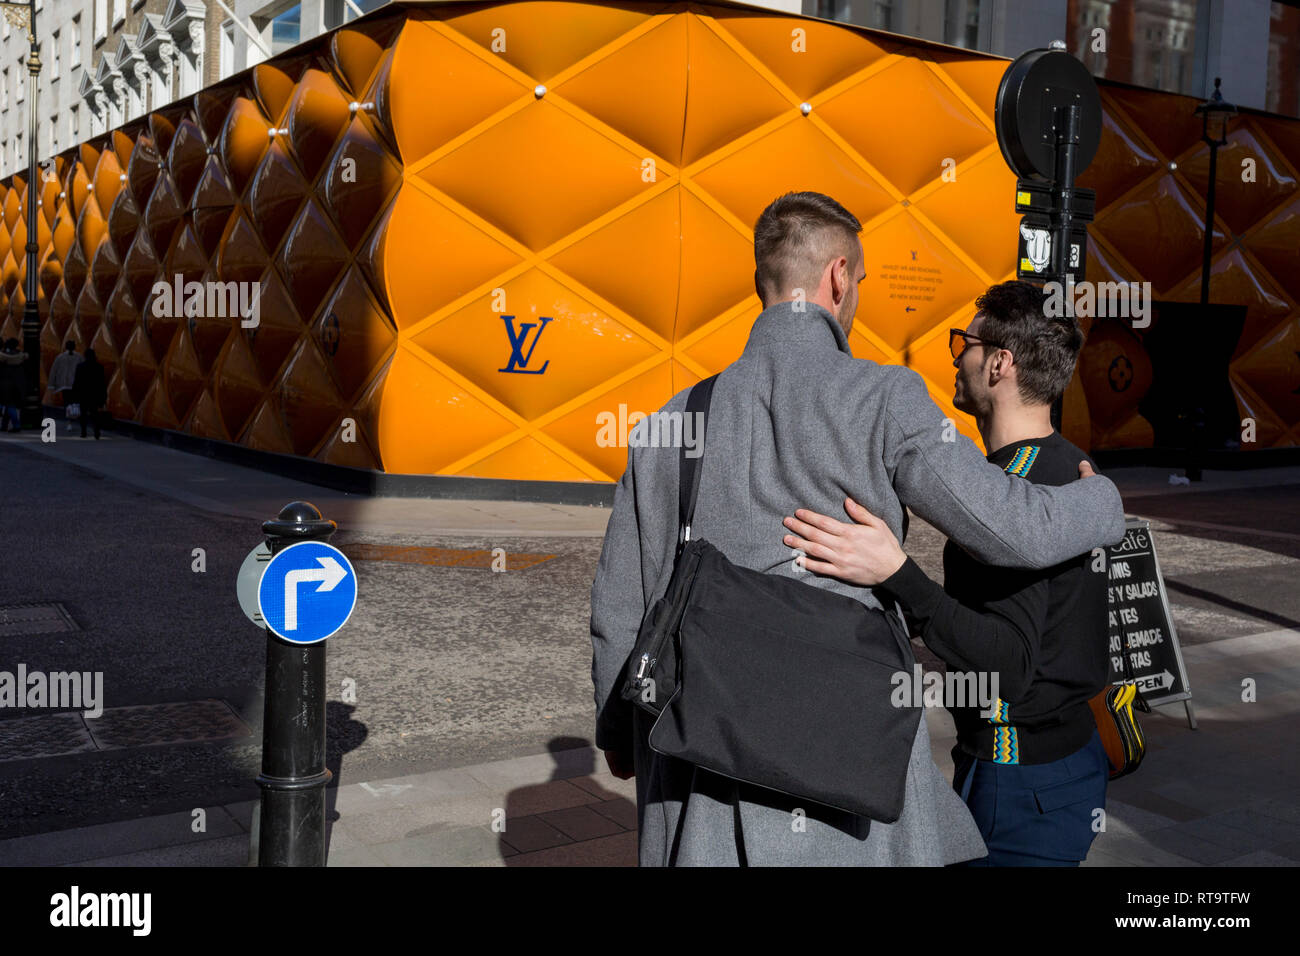 58bb65e90689 Friends greet each other opposite the temporary renovation hoarding of  luxury brand Louis Vuitton in New